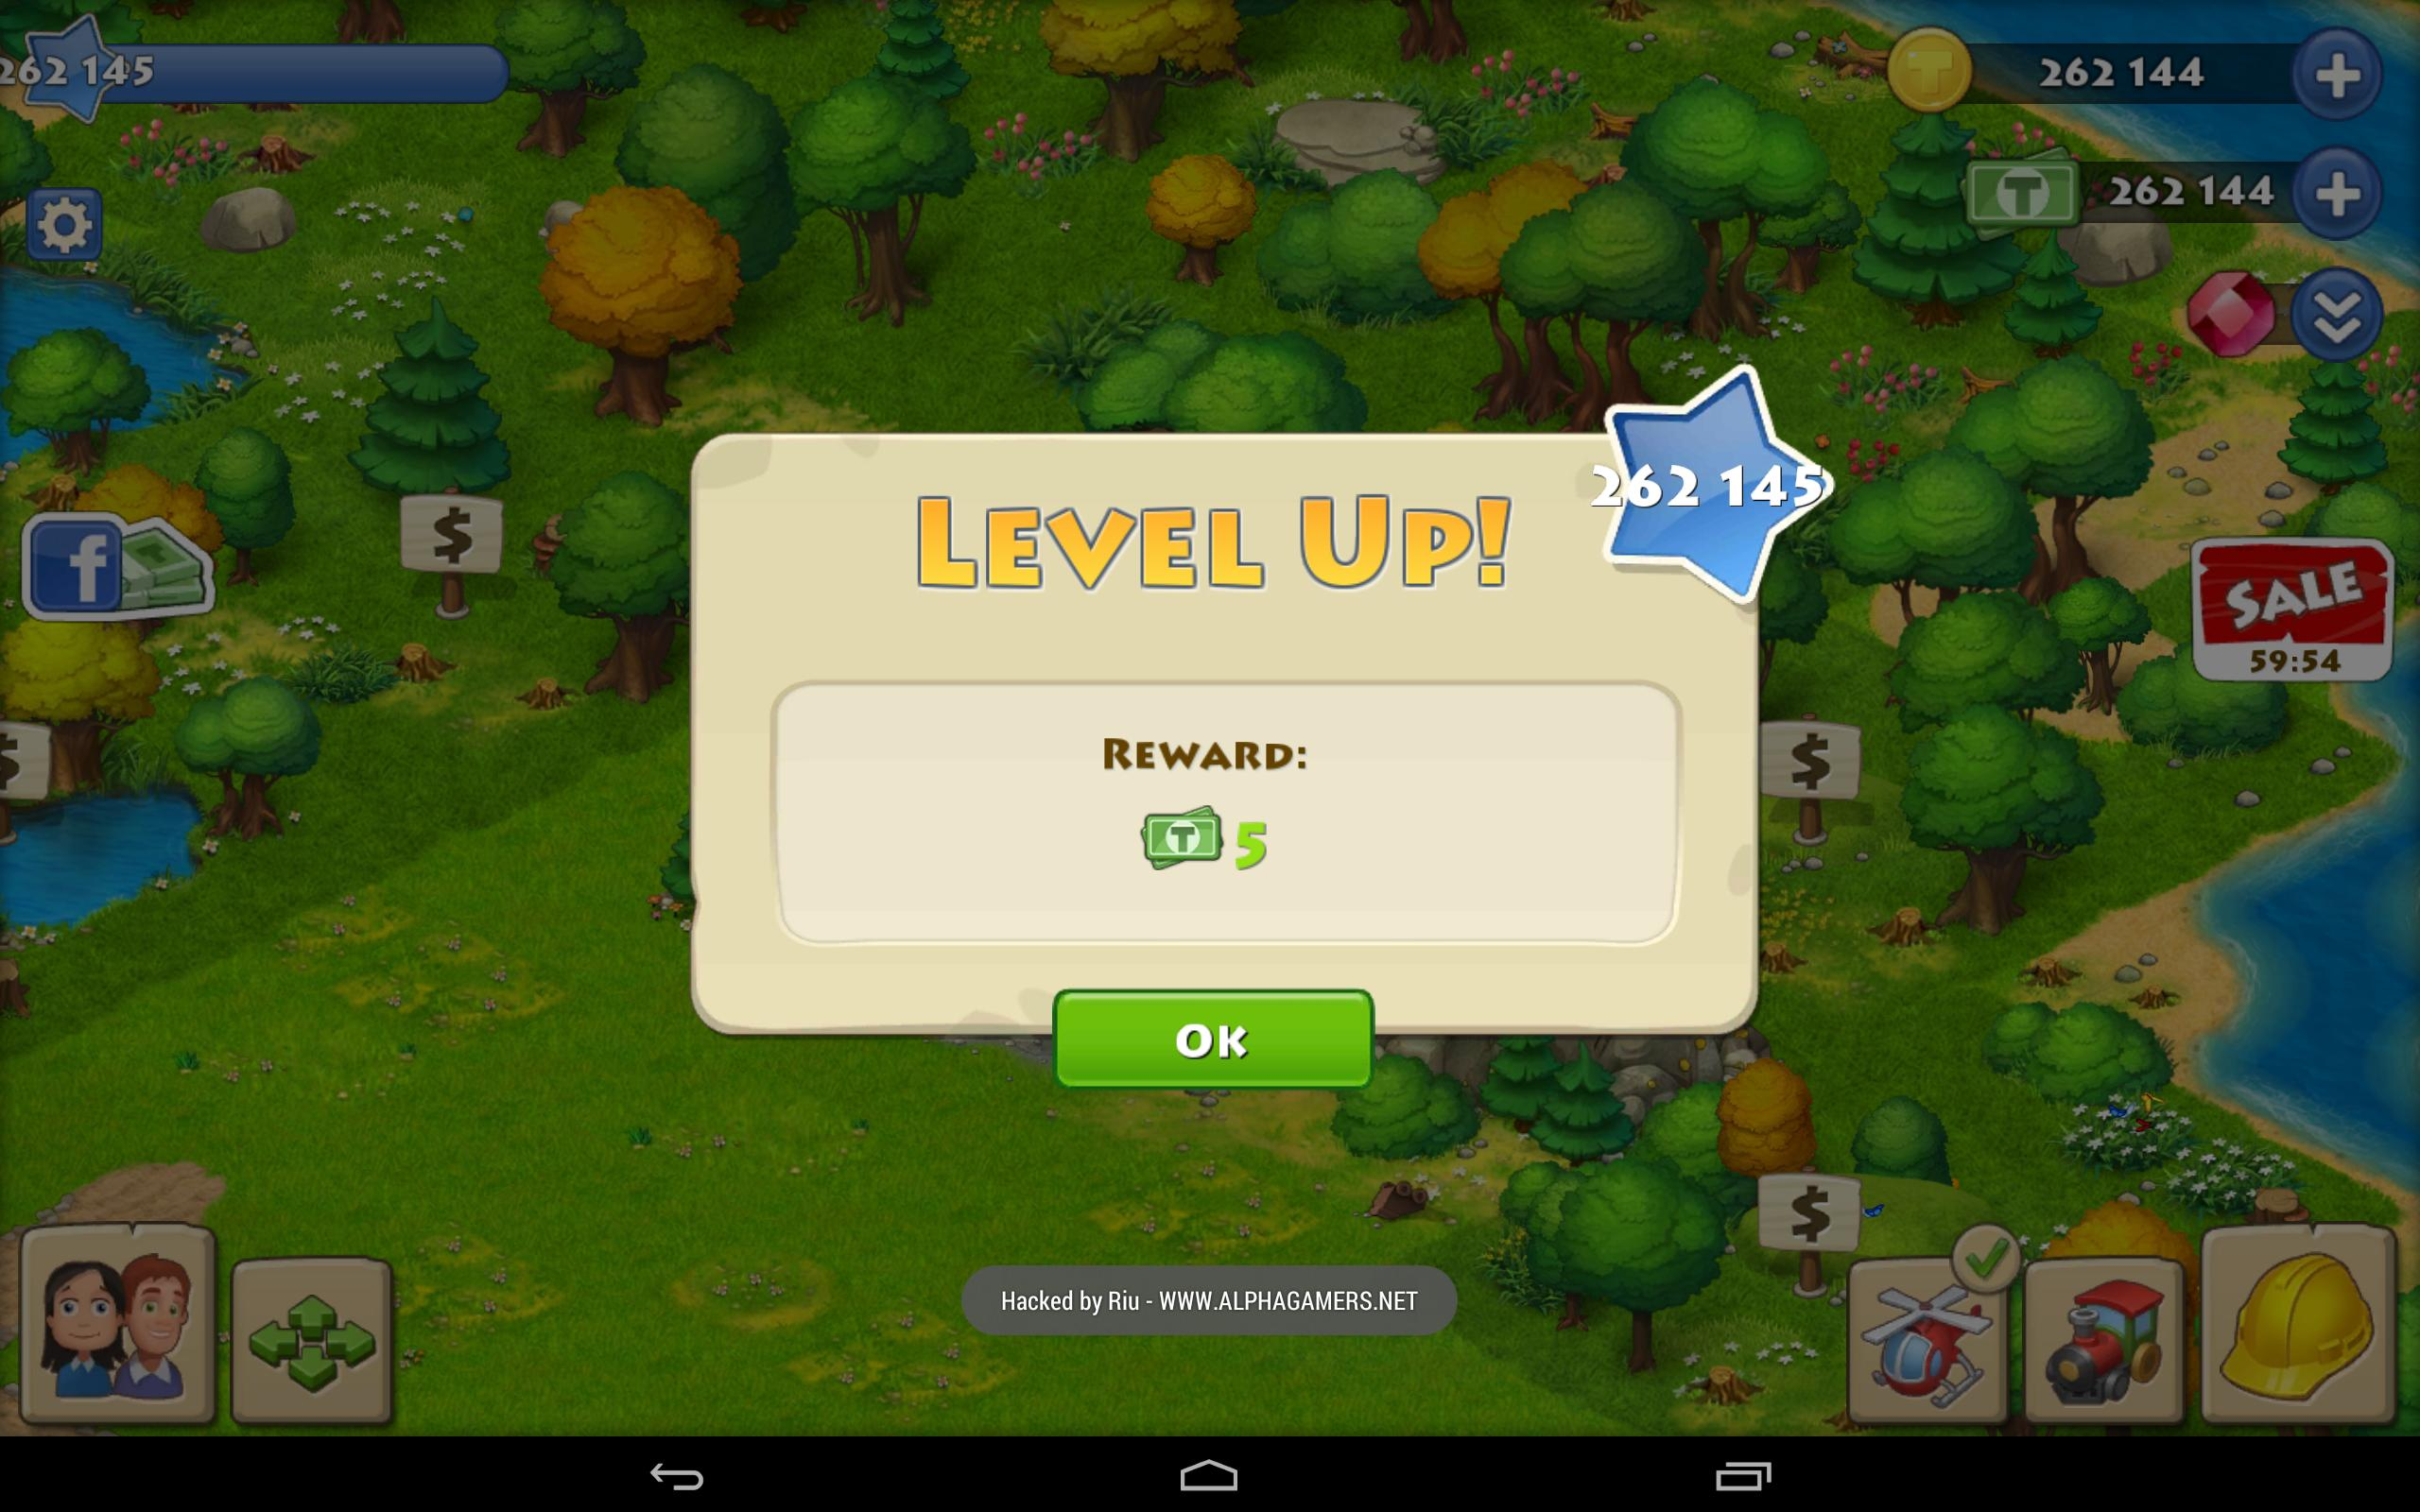 Download Township v2.8.0 Mod Apk loaded with infinite resources and money.